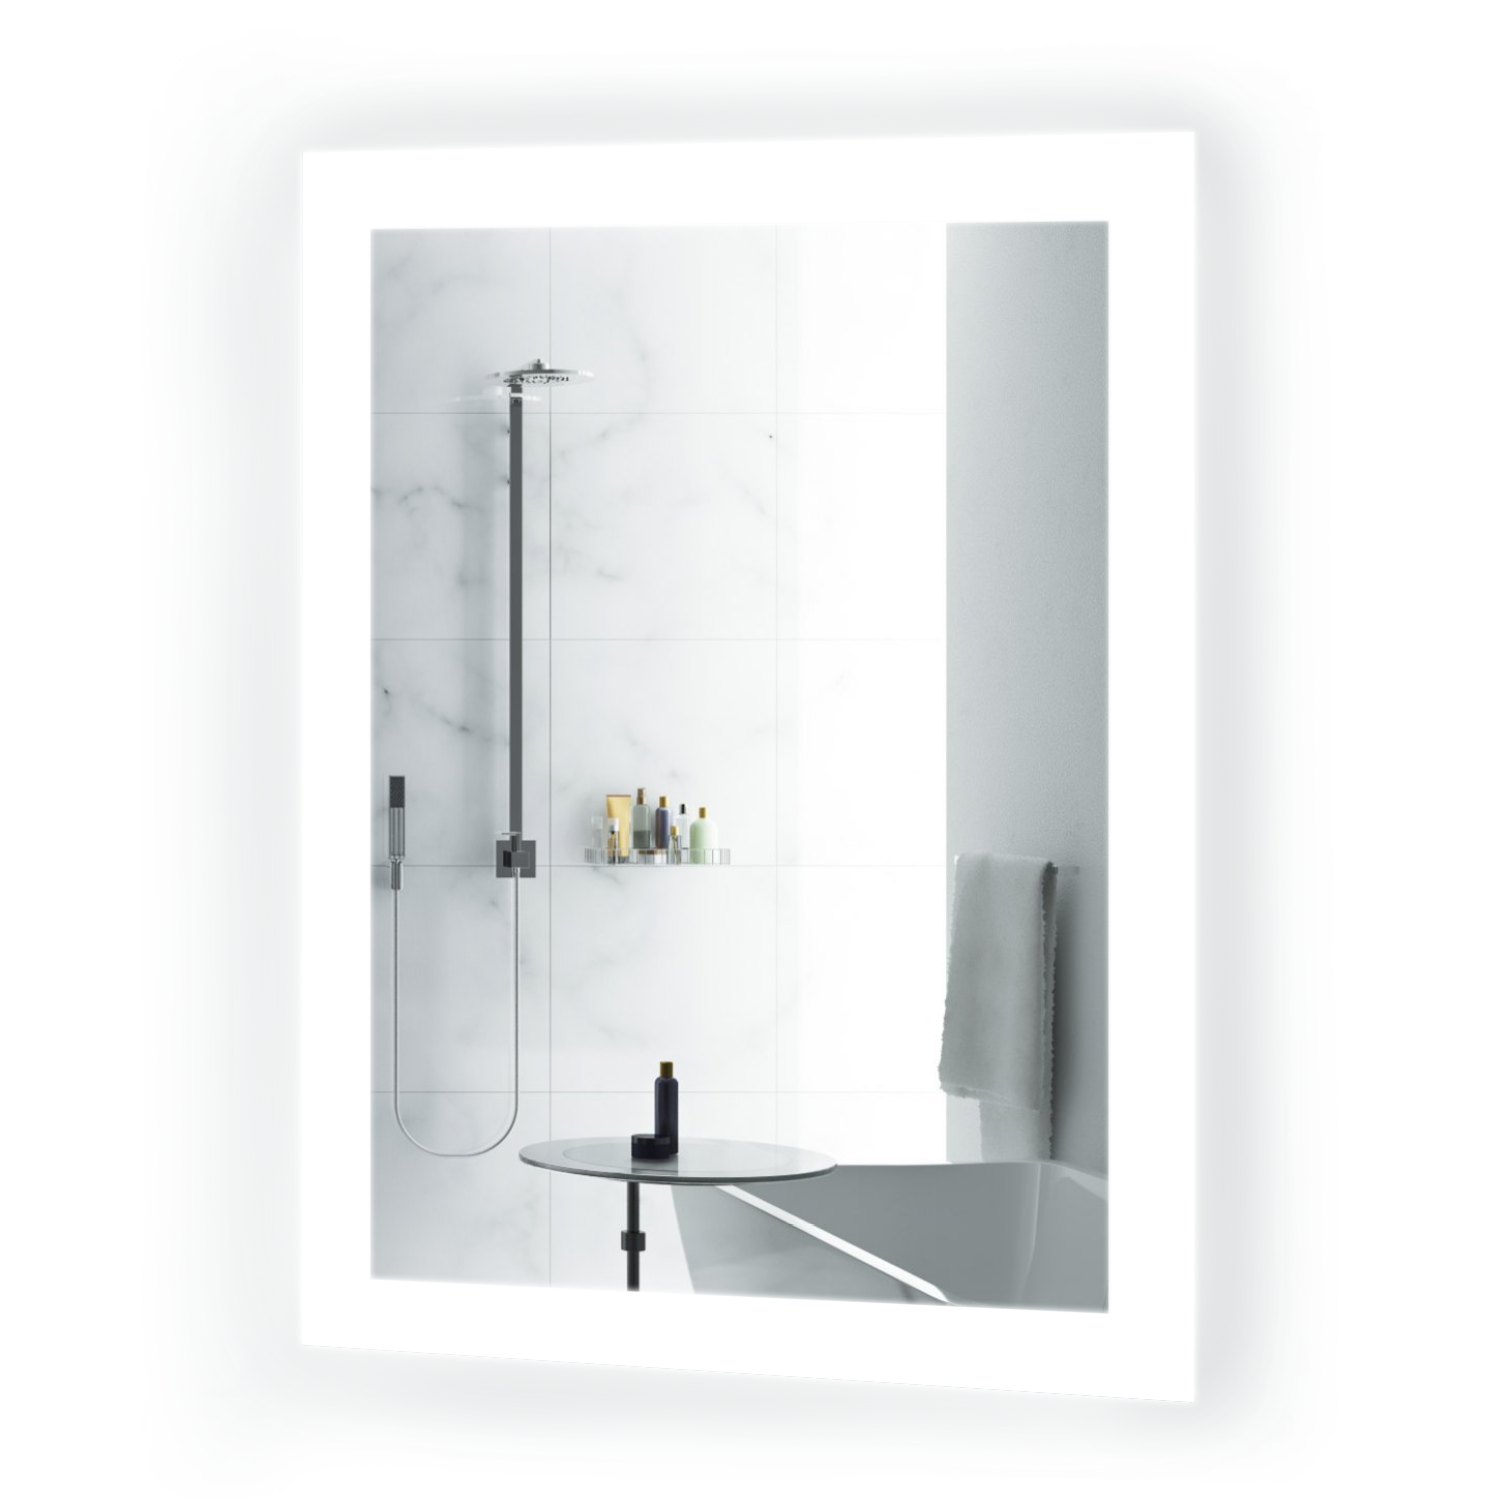 Bijou Small LED Bathroom Mirror 15 Inch x 20 Inch | Lighted Vanity Mirror Includes Dimmer & Defogger Wall Mount Vertical or Horizontal Installation |